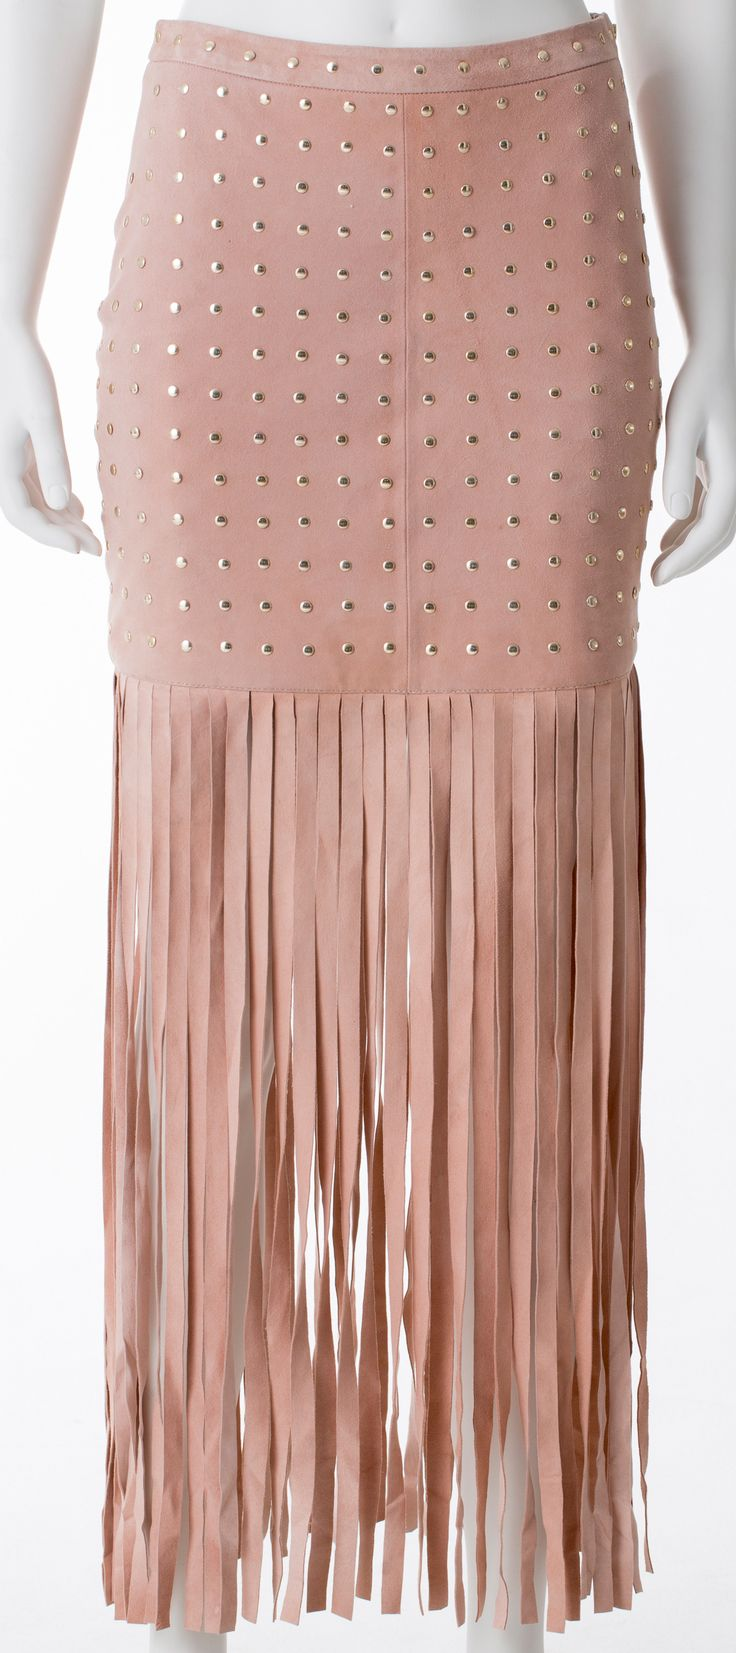 Jupe en suède rose à clous or et franges, MARCIANO, 278$ * Pink suede skirt with fringe and gold studs, MARCIANO, $278